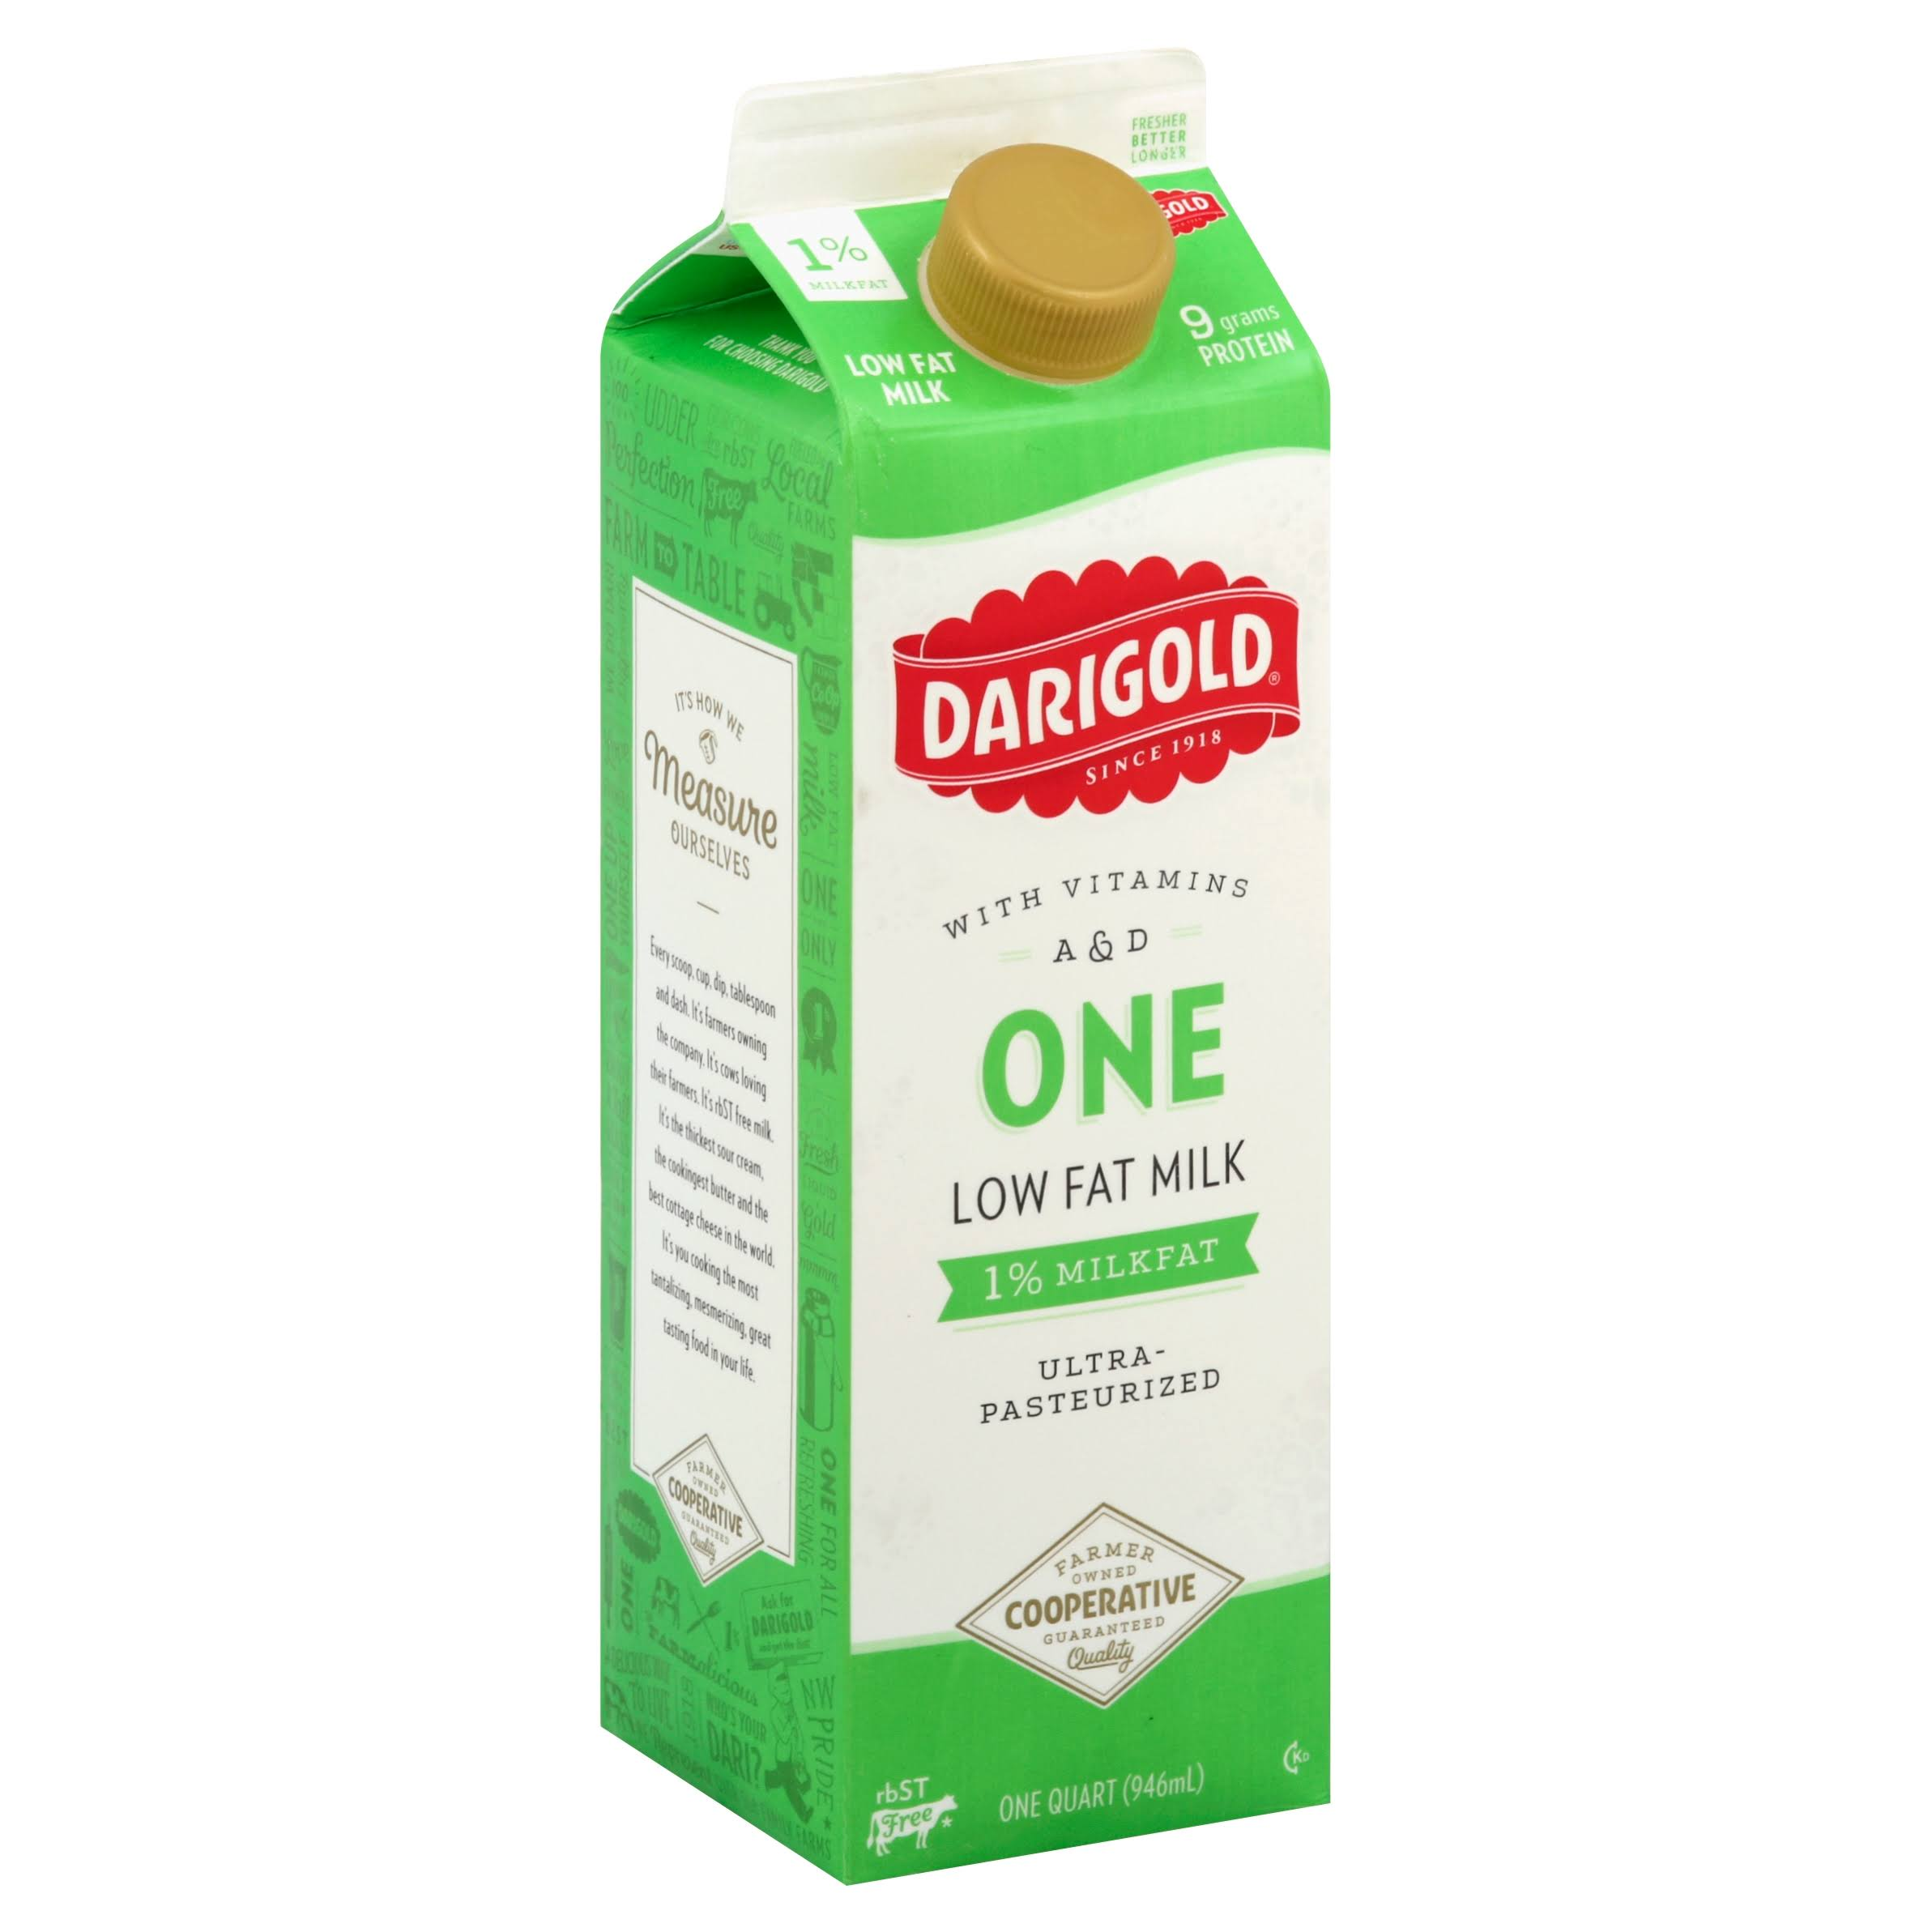 Darigold One Milk, Low Fat, 1% Milkfat - one quart (946 ml)